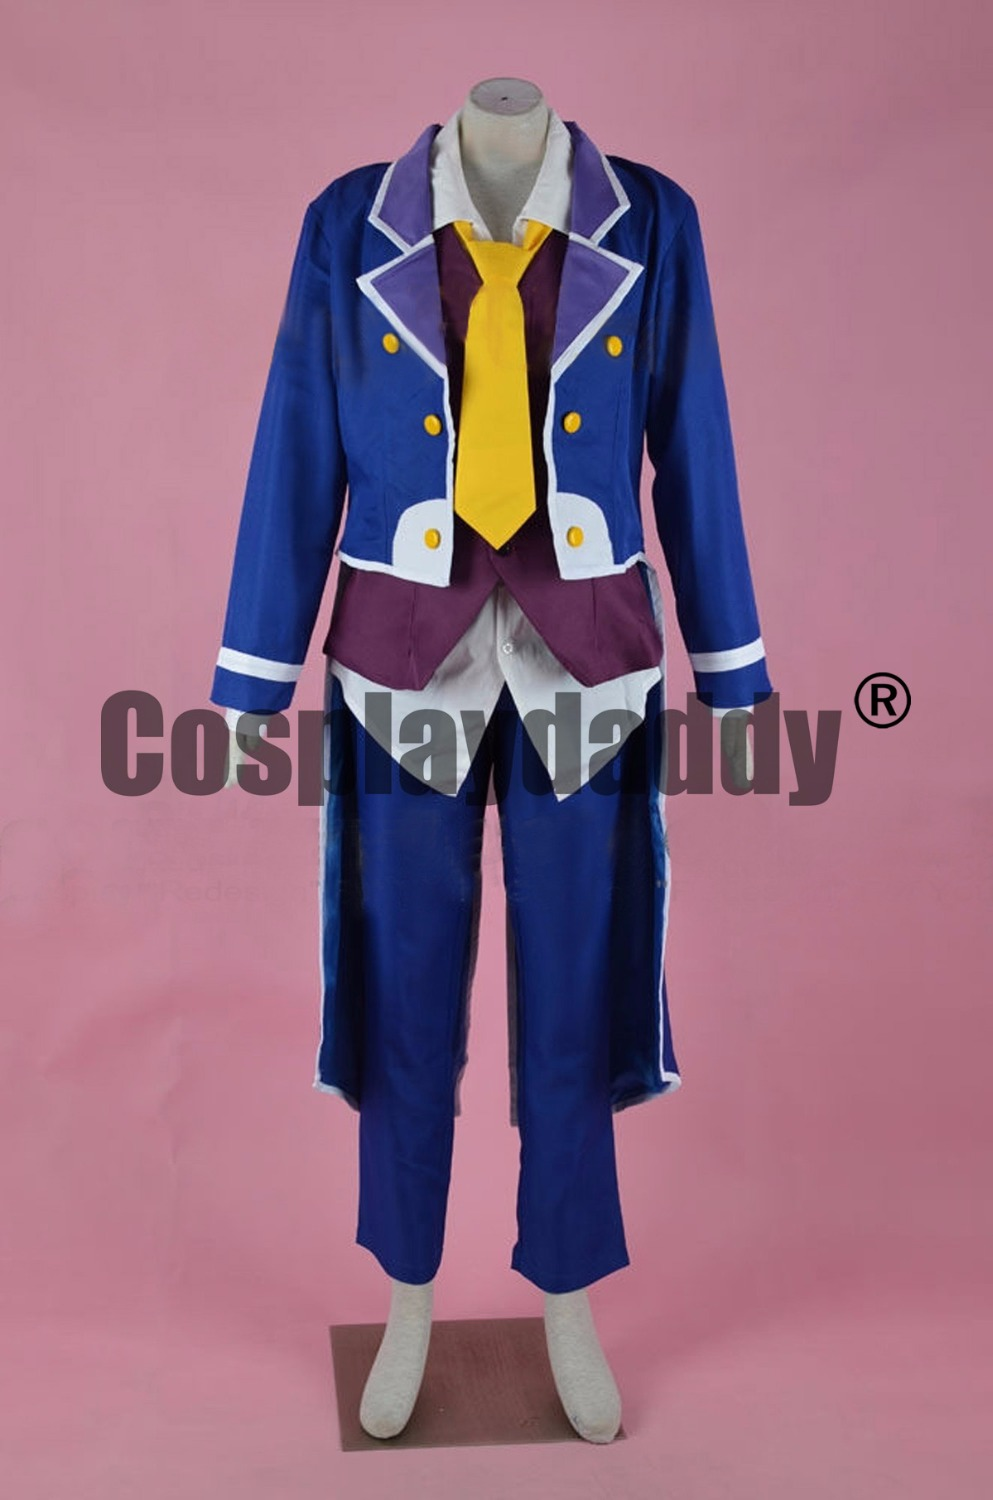 No Game No Life: Zero Imanity Sora OVA Cover Uniform Outfit Cosplay Costume F006